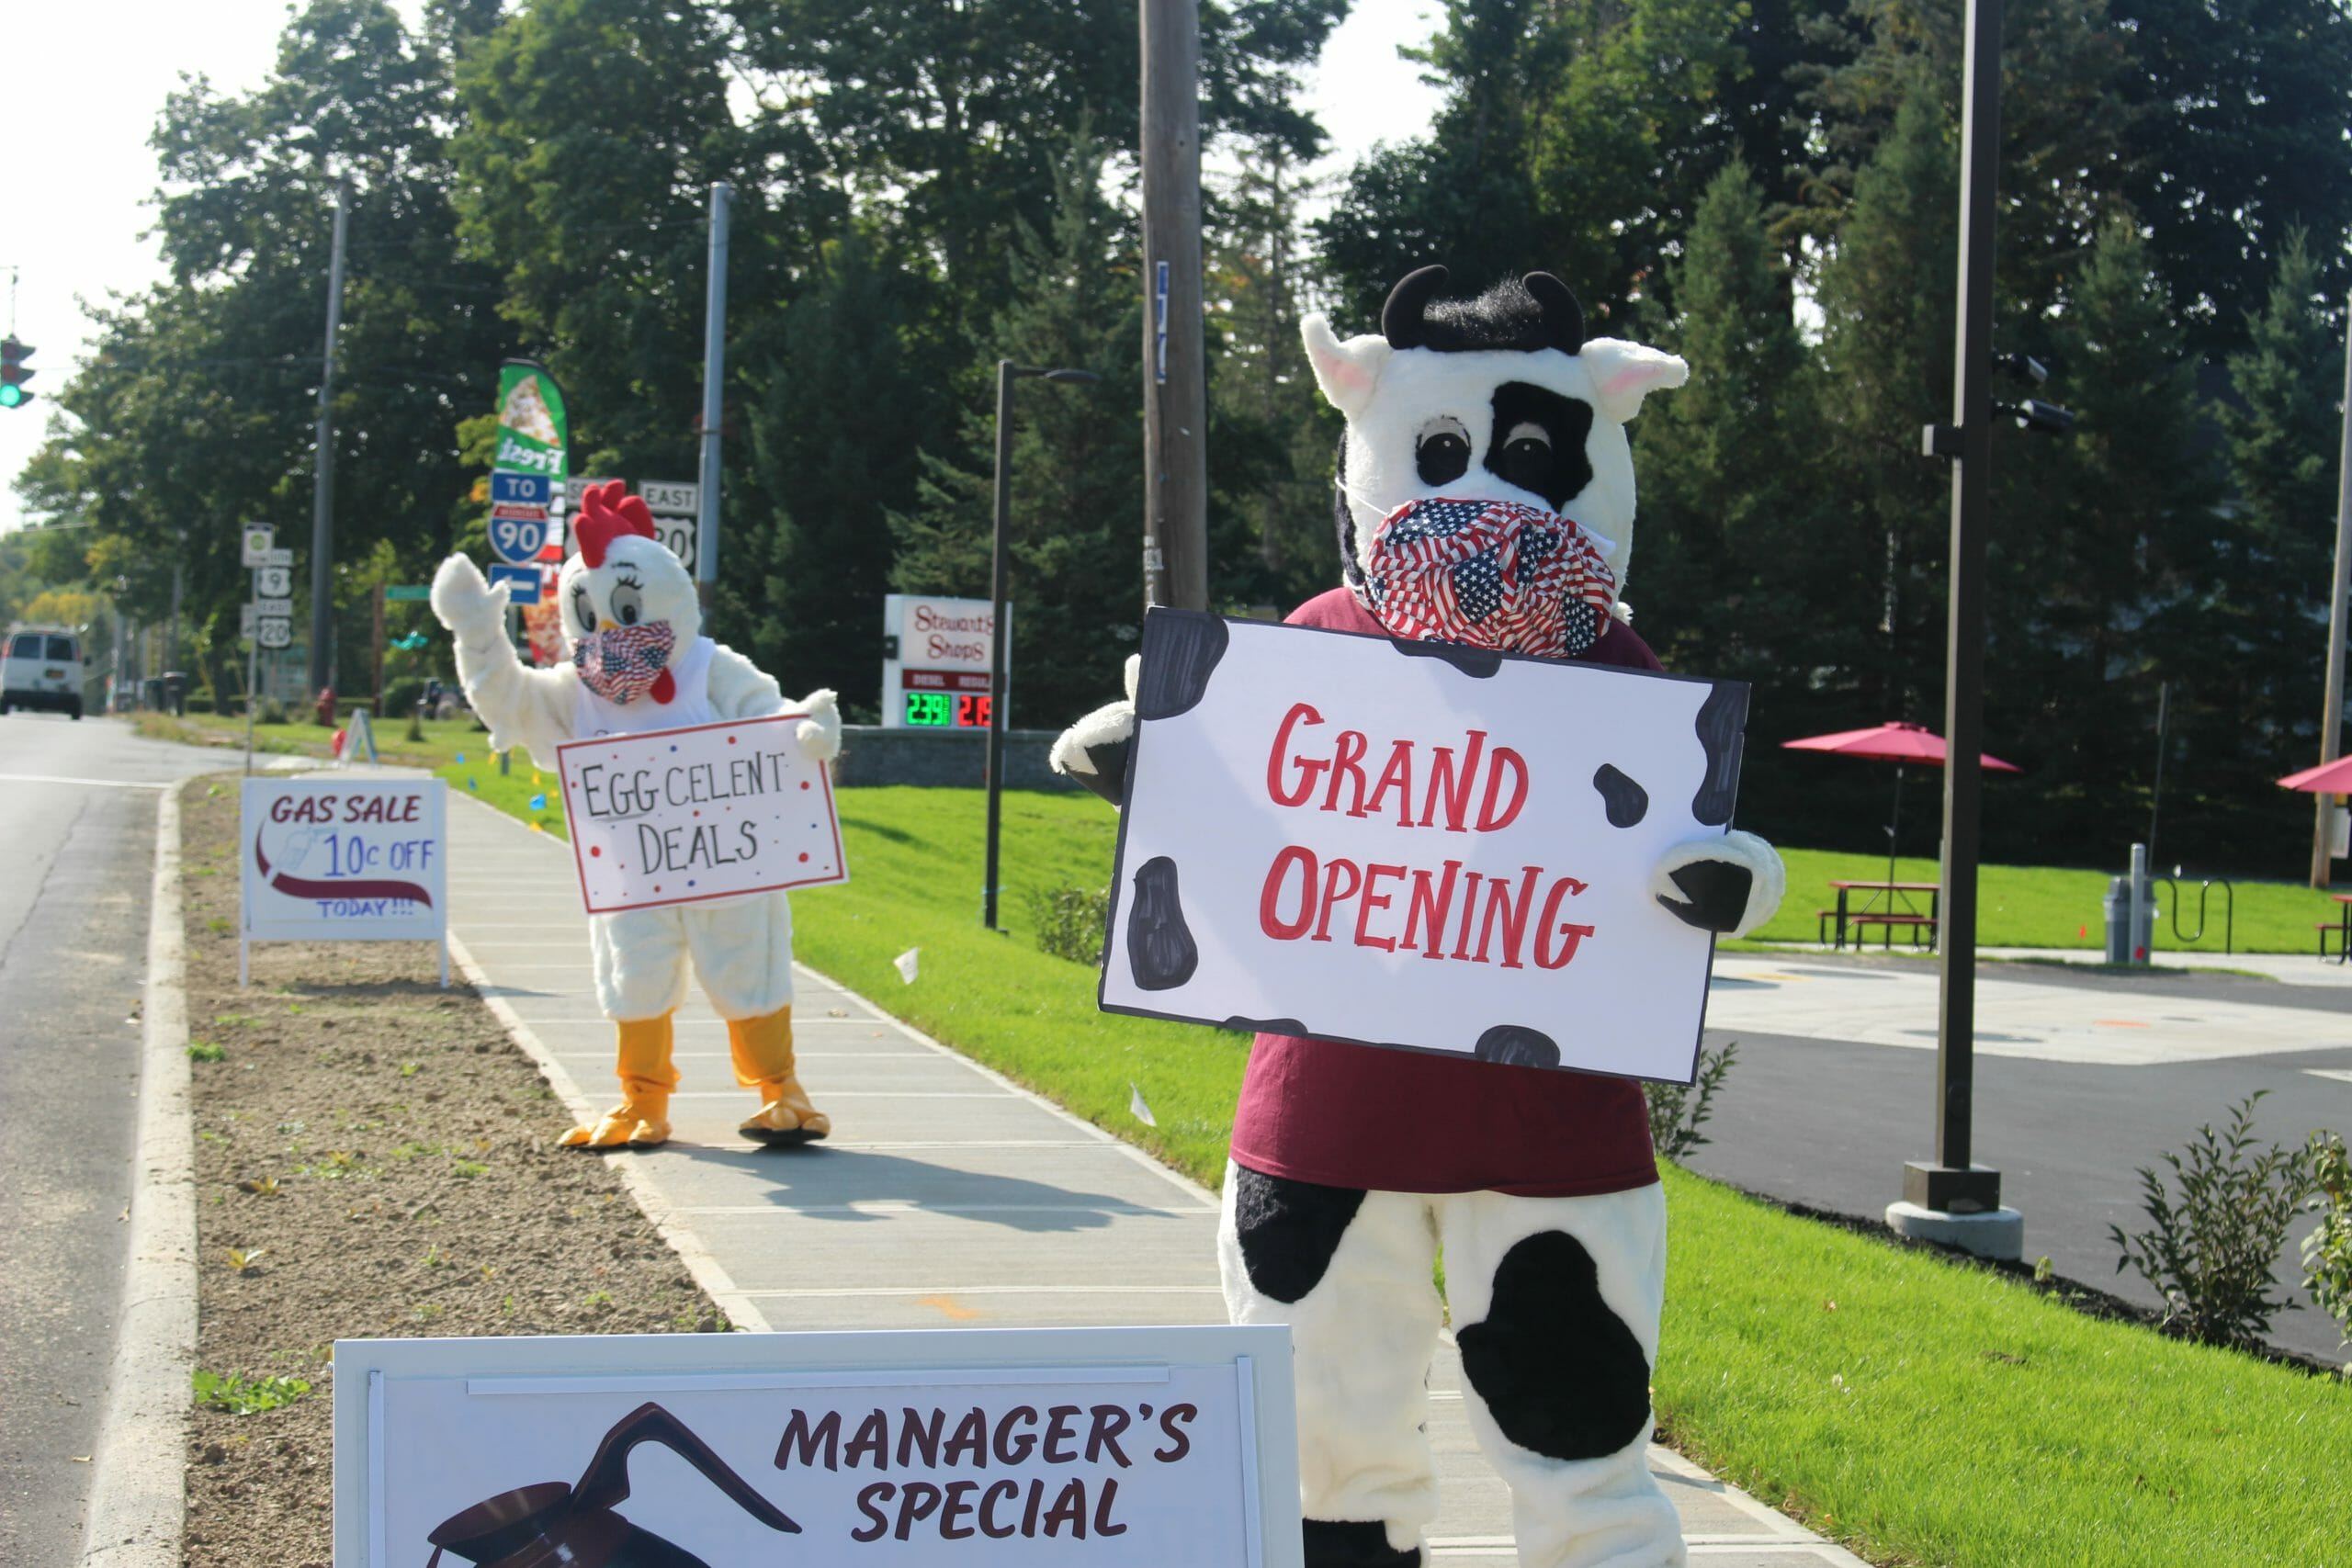 The Stewarts mascots Fresh the chicken and Flavor the Cow holding signs Eggcelent deals and Grand opening